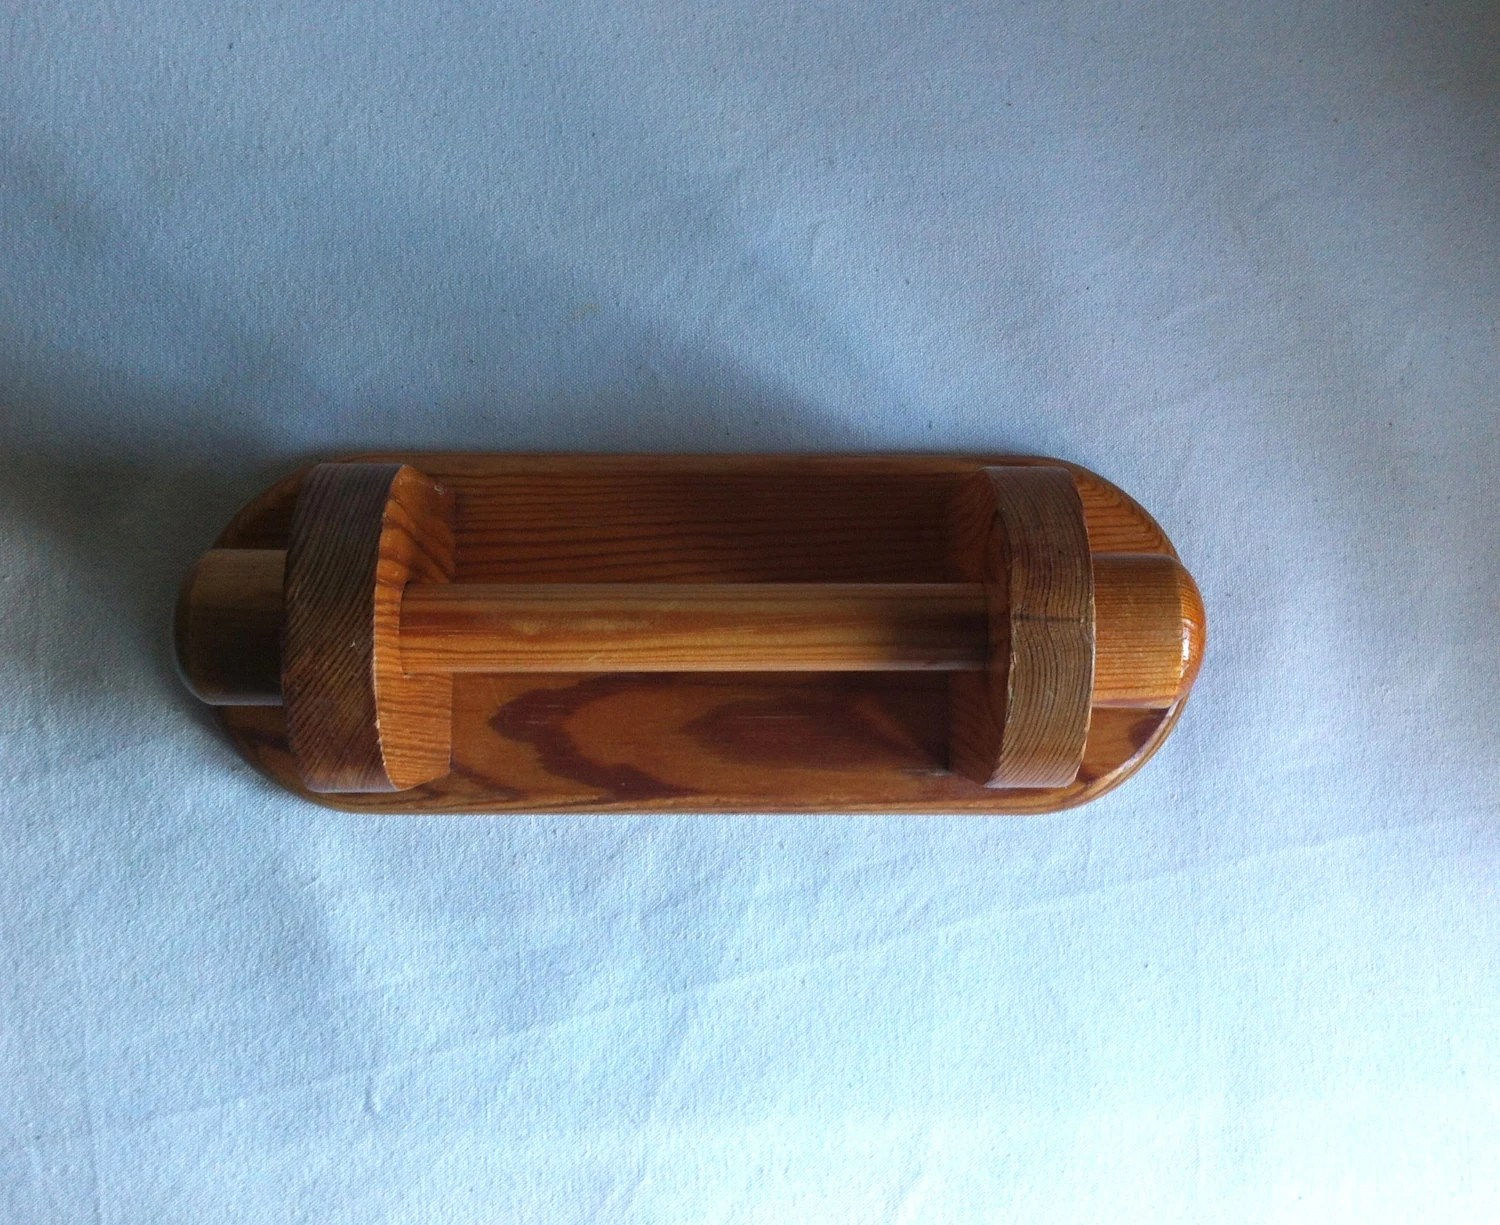 Wood Toilet Roll Holder Vintage Pine Wood Wall Mounted Toilet Roll Holder By